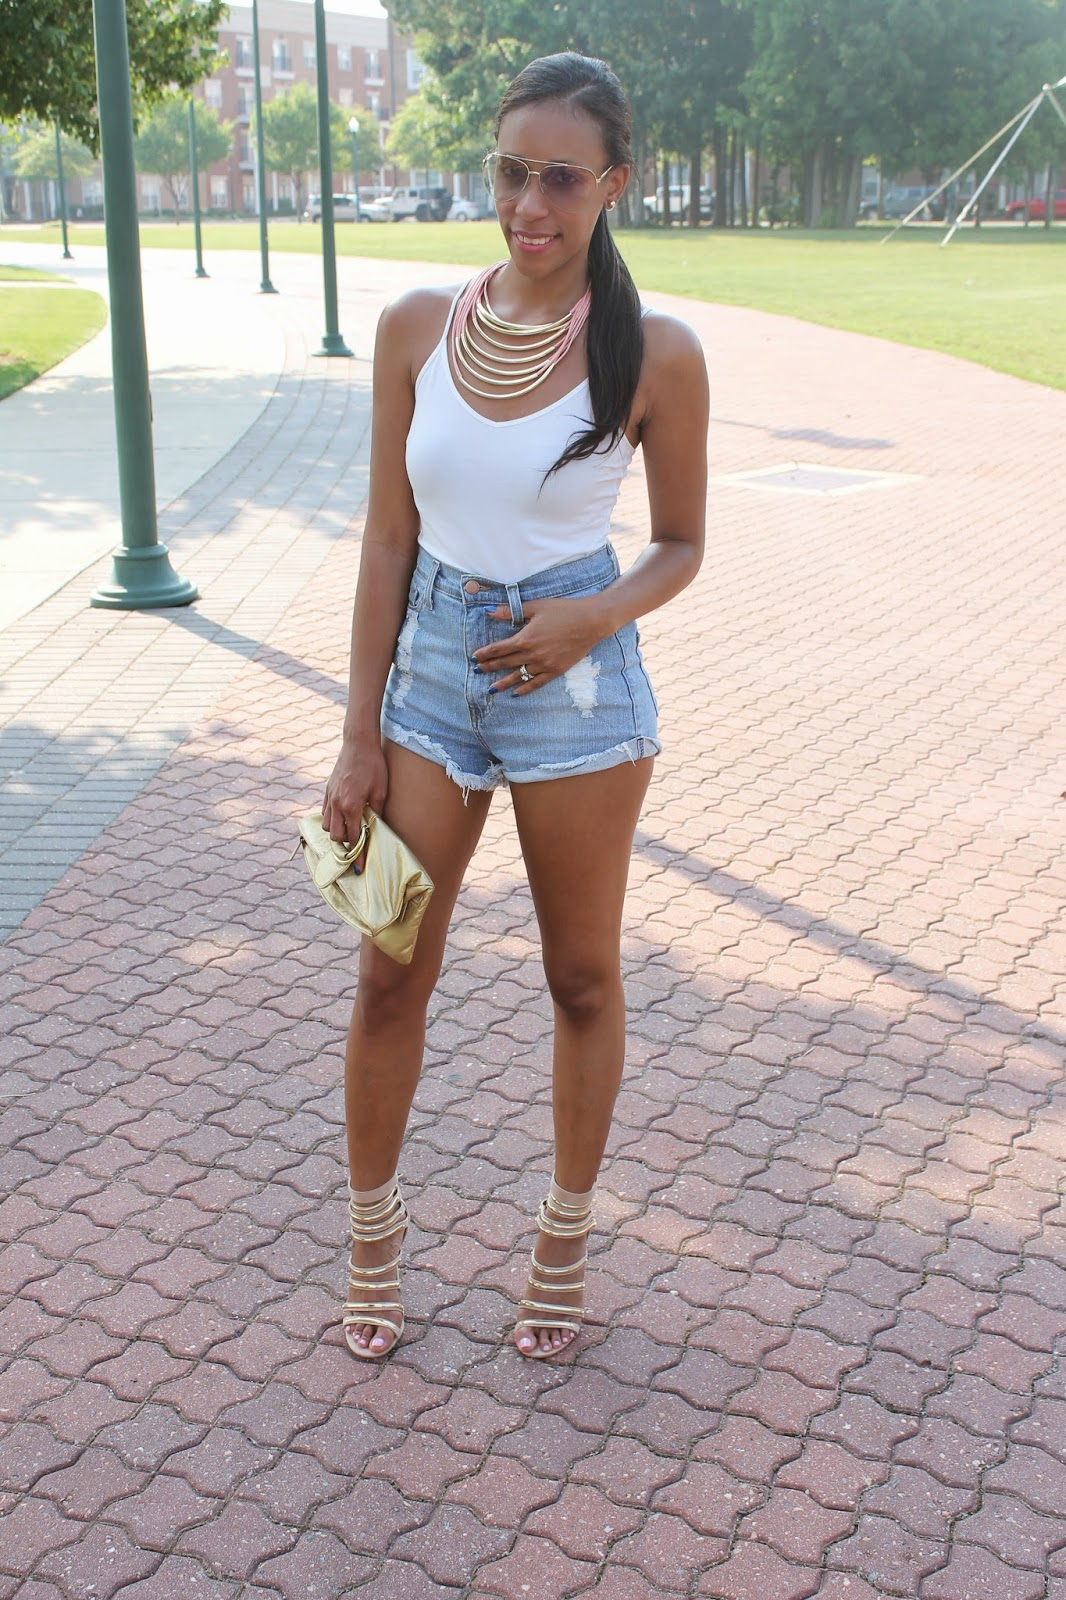 mdollnyc: SHORTS, HEELS & MY FANCY BMW